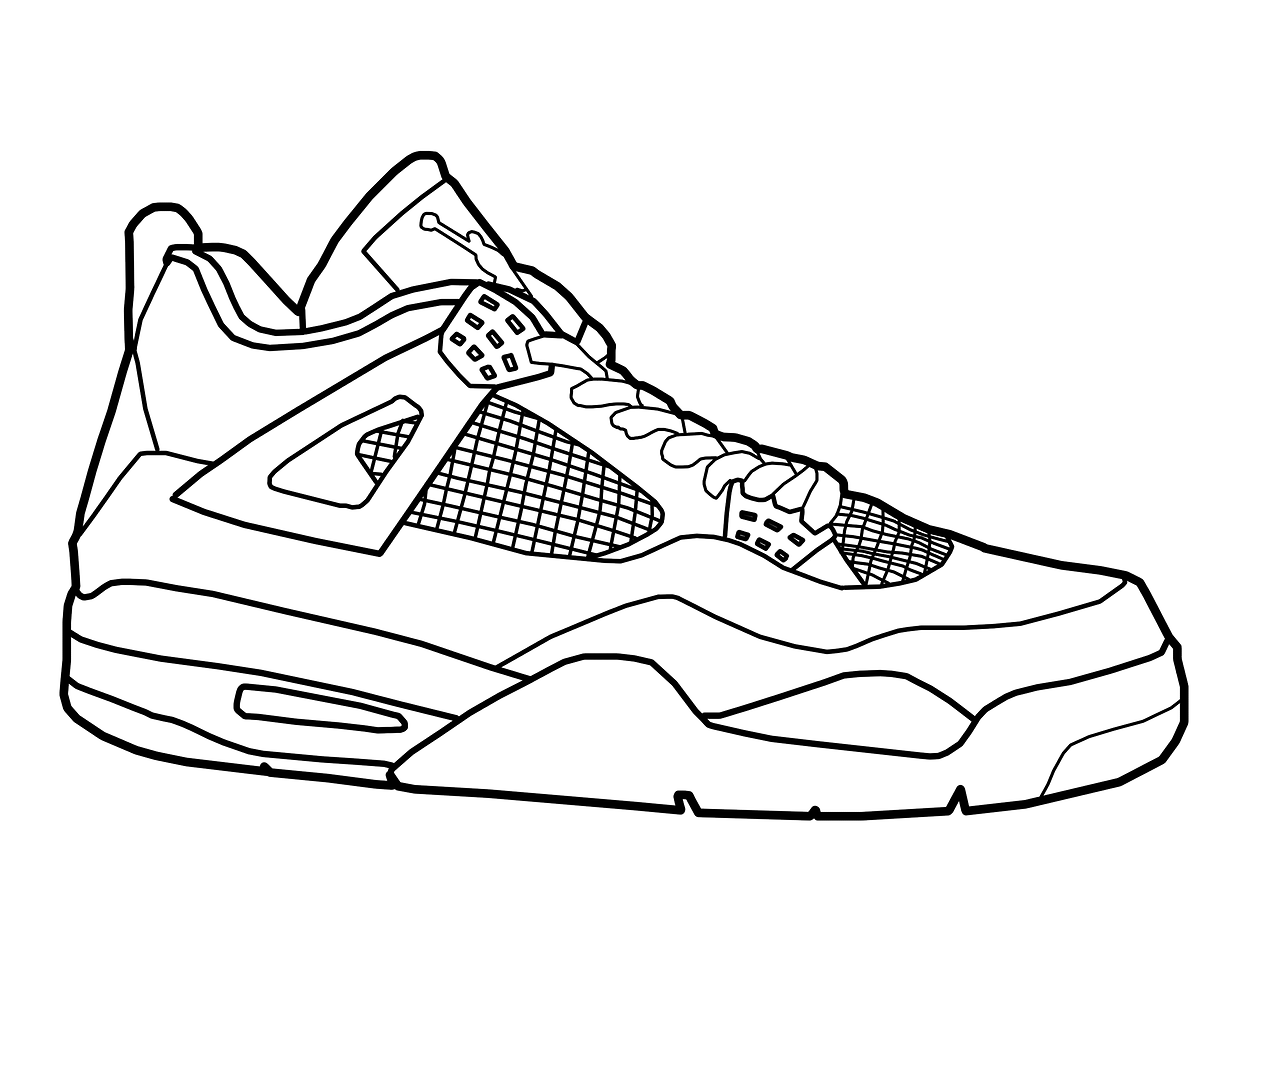 Coloring pages for jordans - Jordan 4 Shoes Coloring Pages